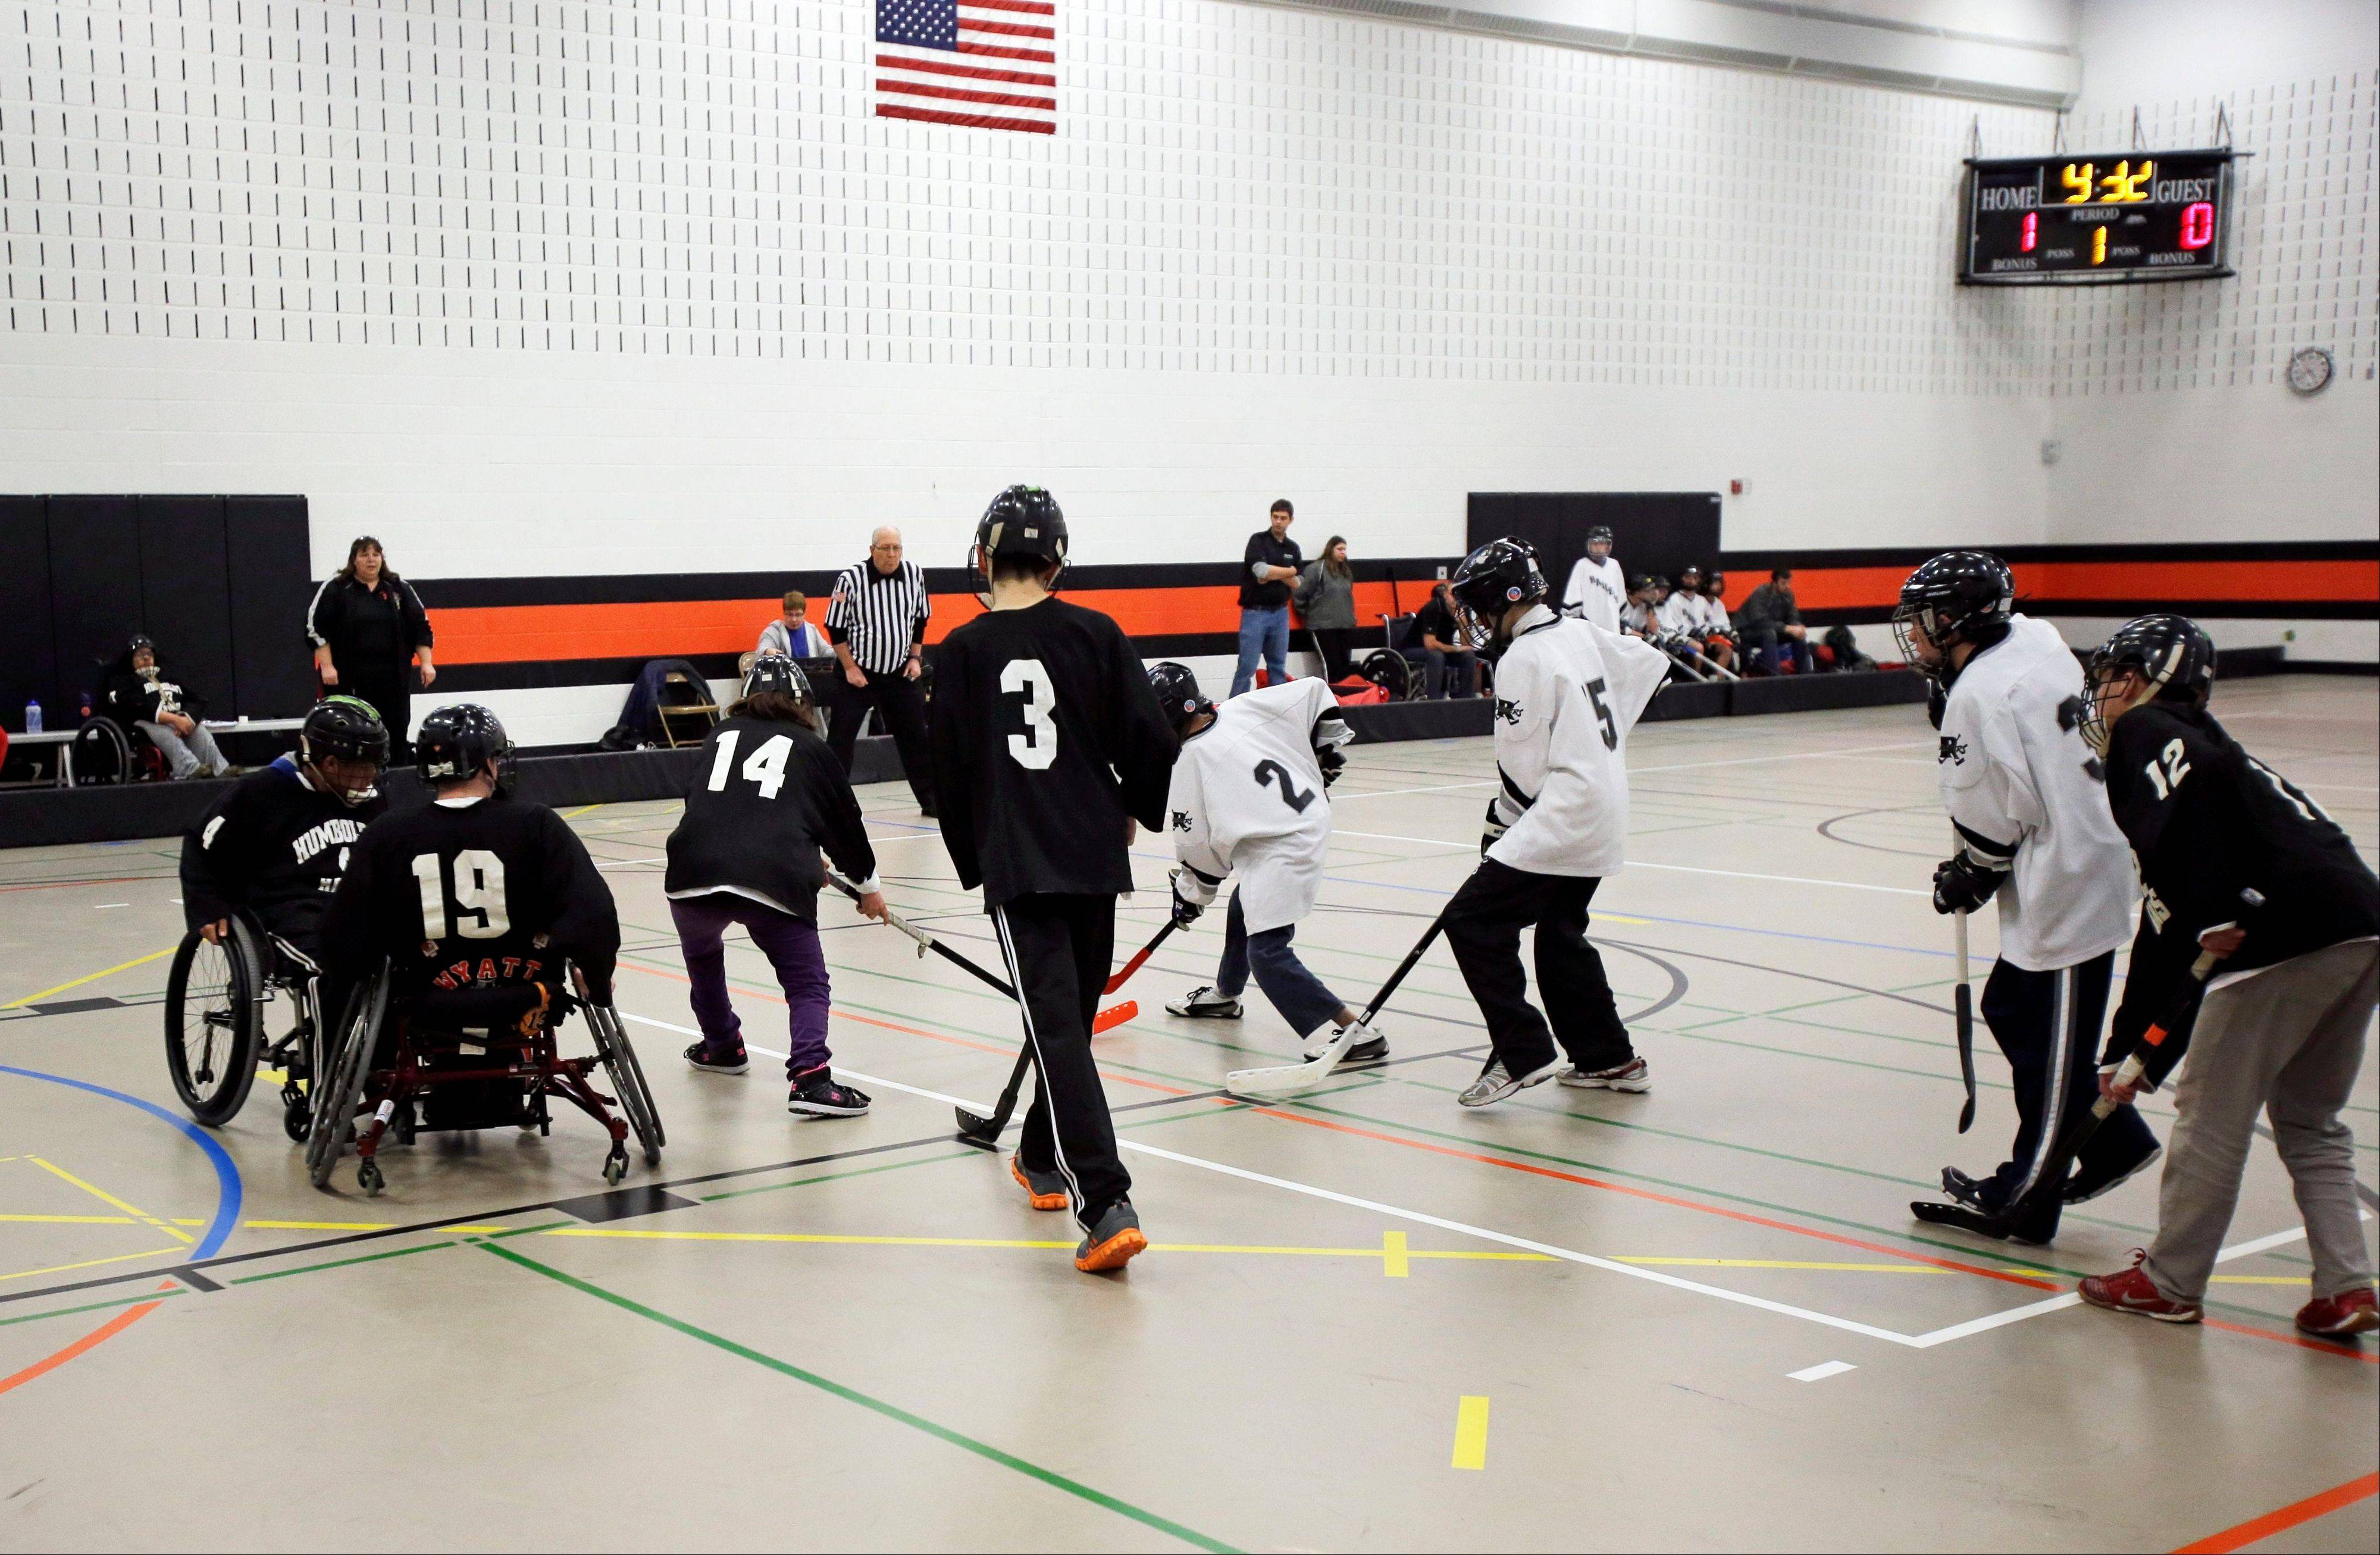 High school students participate in a floor hockey game in St. Paul, Minn., Tuesday. Floor hockey is one of the �adapted athletics� programs the state high school league has run since 1992. Minnesota has become a model state as the federal government pushes schools to include more disabled students in sports. Coaching the Hawks is Mary Bohland, background left.